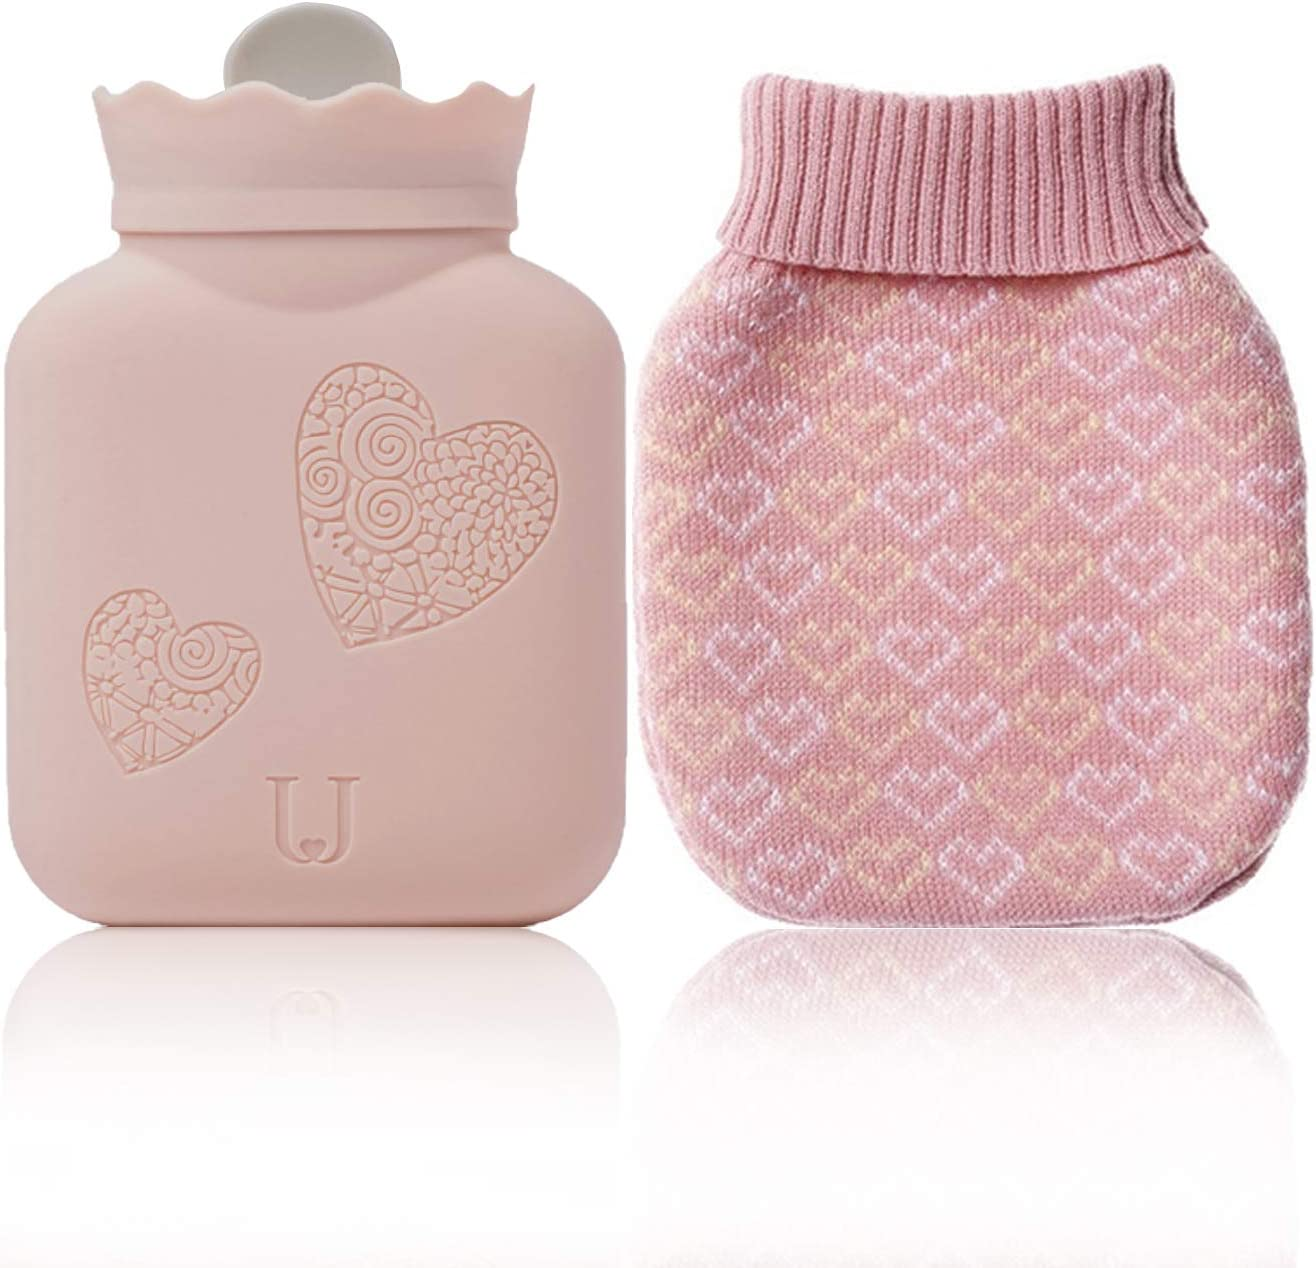 Microwave Heating Silicone Hot Water Bottle Bag with Knit Cover, Hot & Cold Therapies Back pain - Gift for Girlfriend,Mather,Valentine's Day : Health & Household